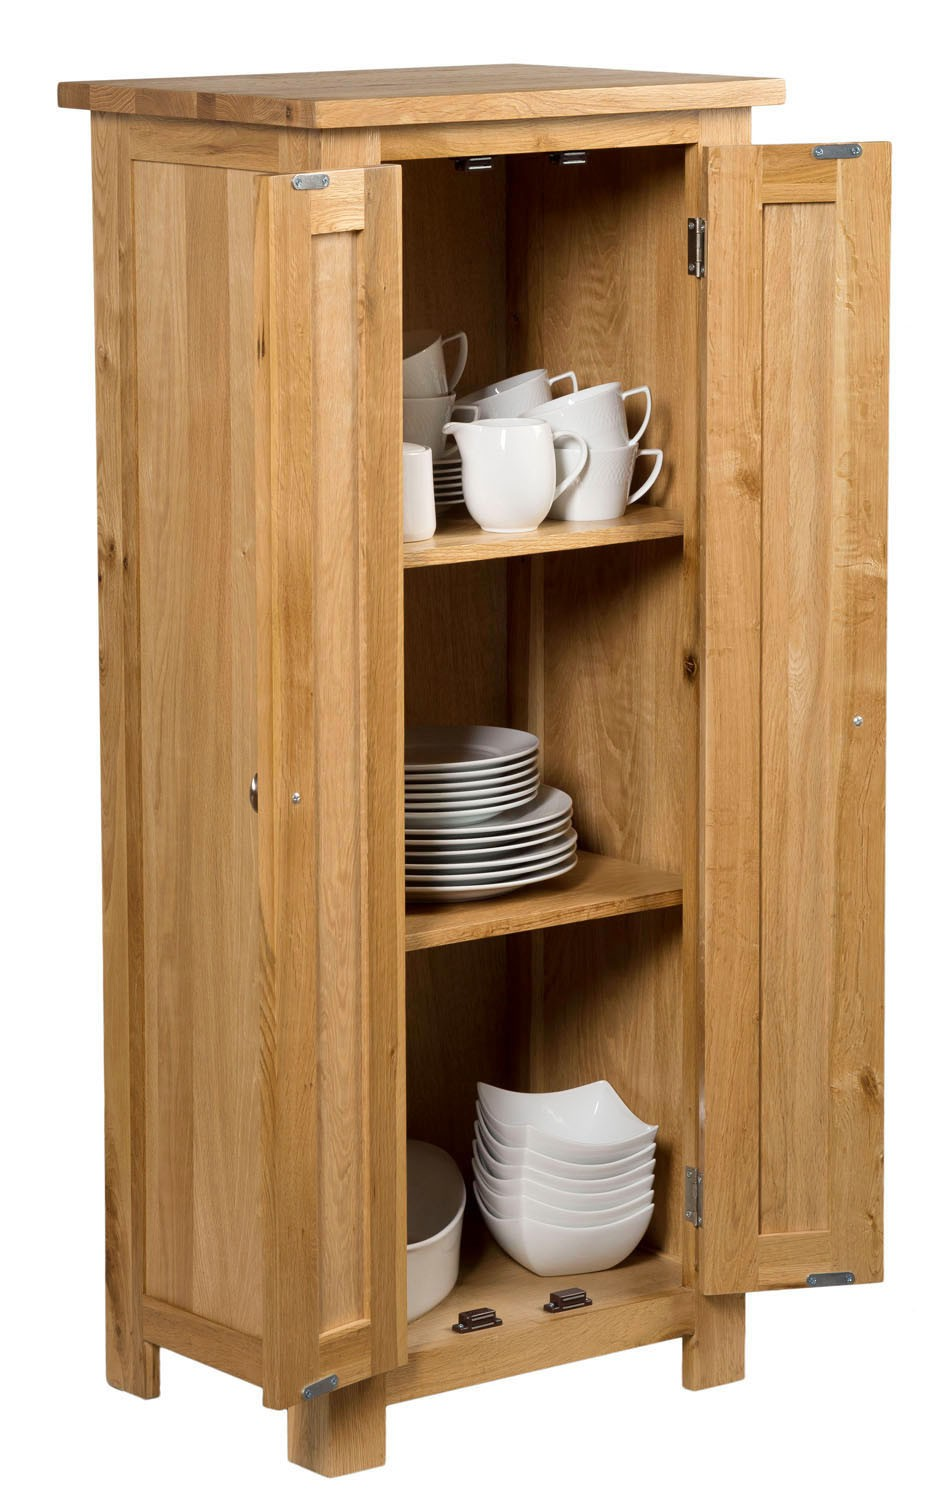 Tall Wood Storage Cabinets